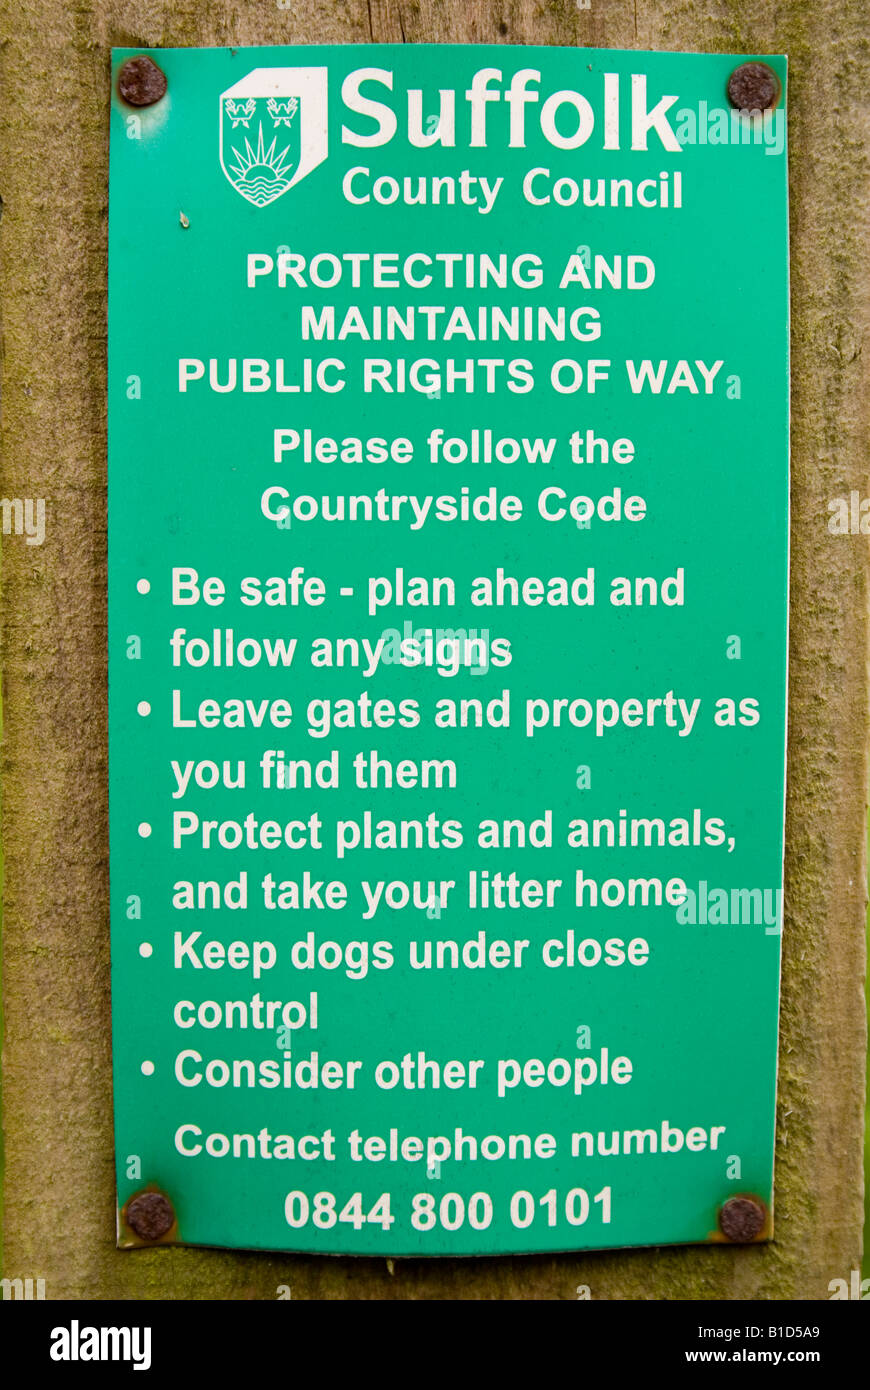 Public Rights Of Way Sign In Suffolk - Stock Image